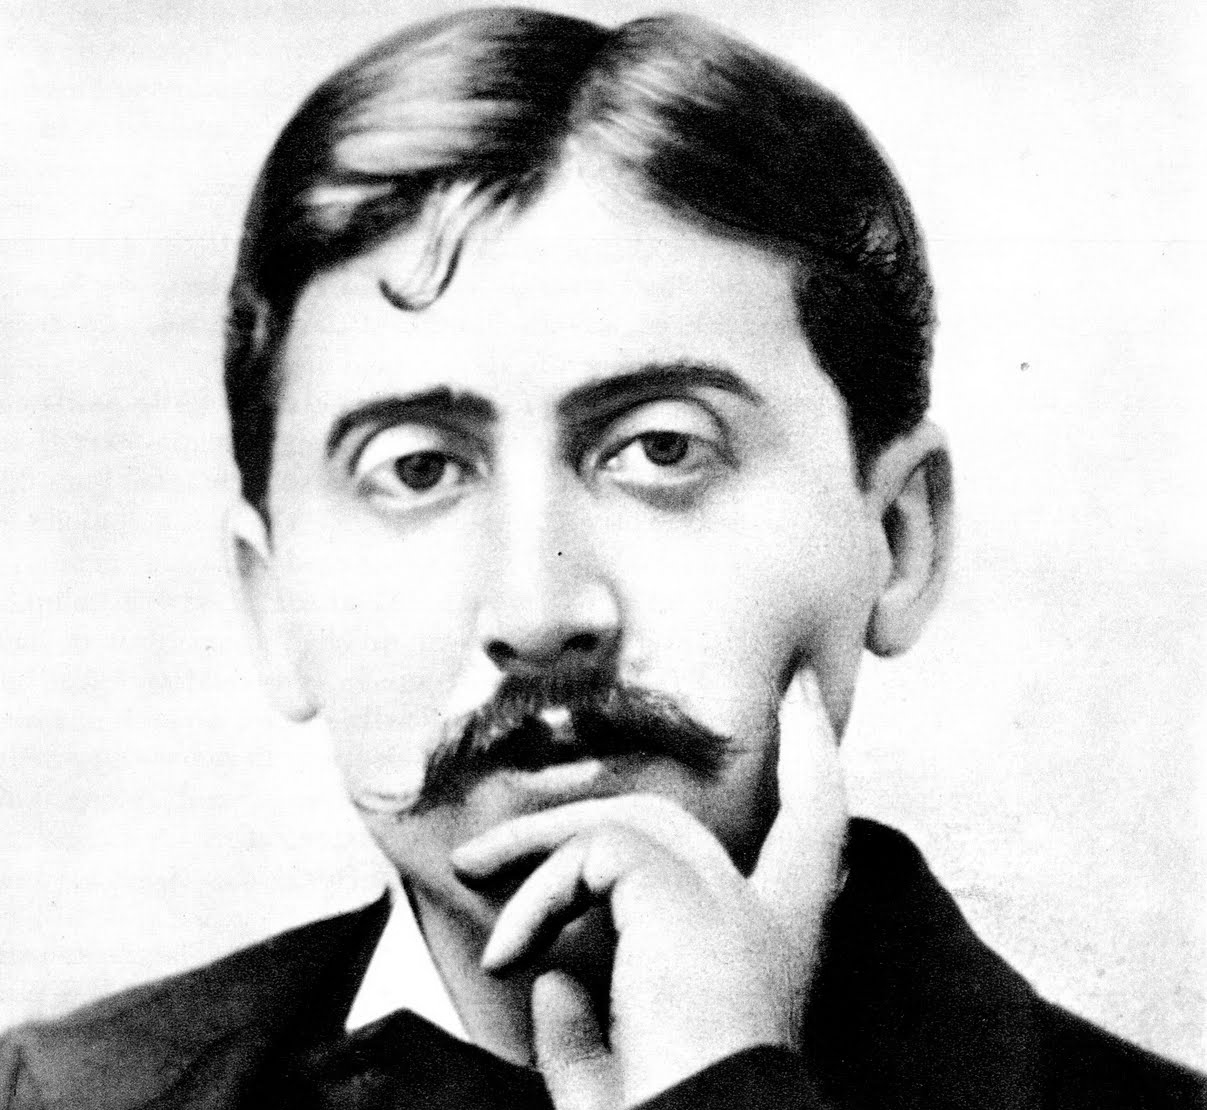 proust_cropped